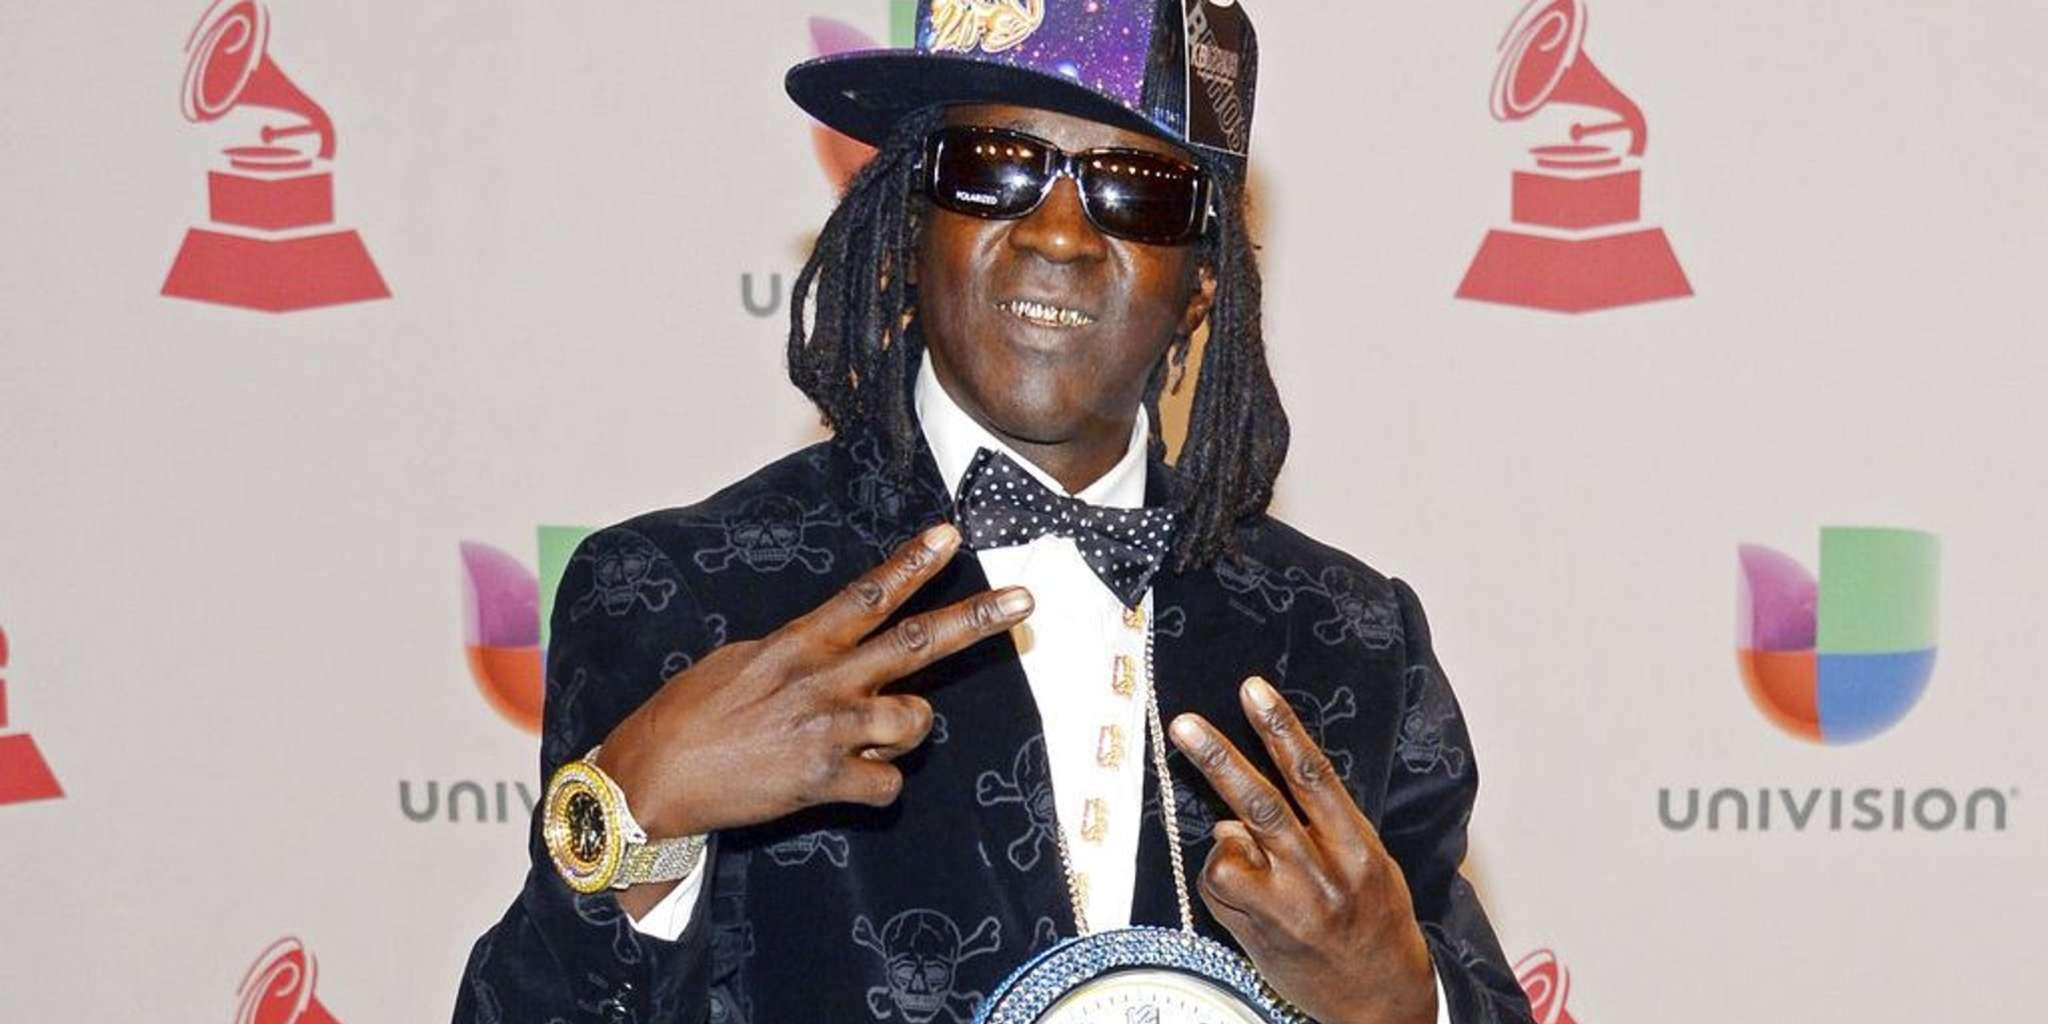 Flavor Flav's Baby Momma Is Reportedly Seeking $50k She Allegedly Loaned Him